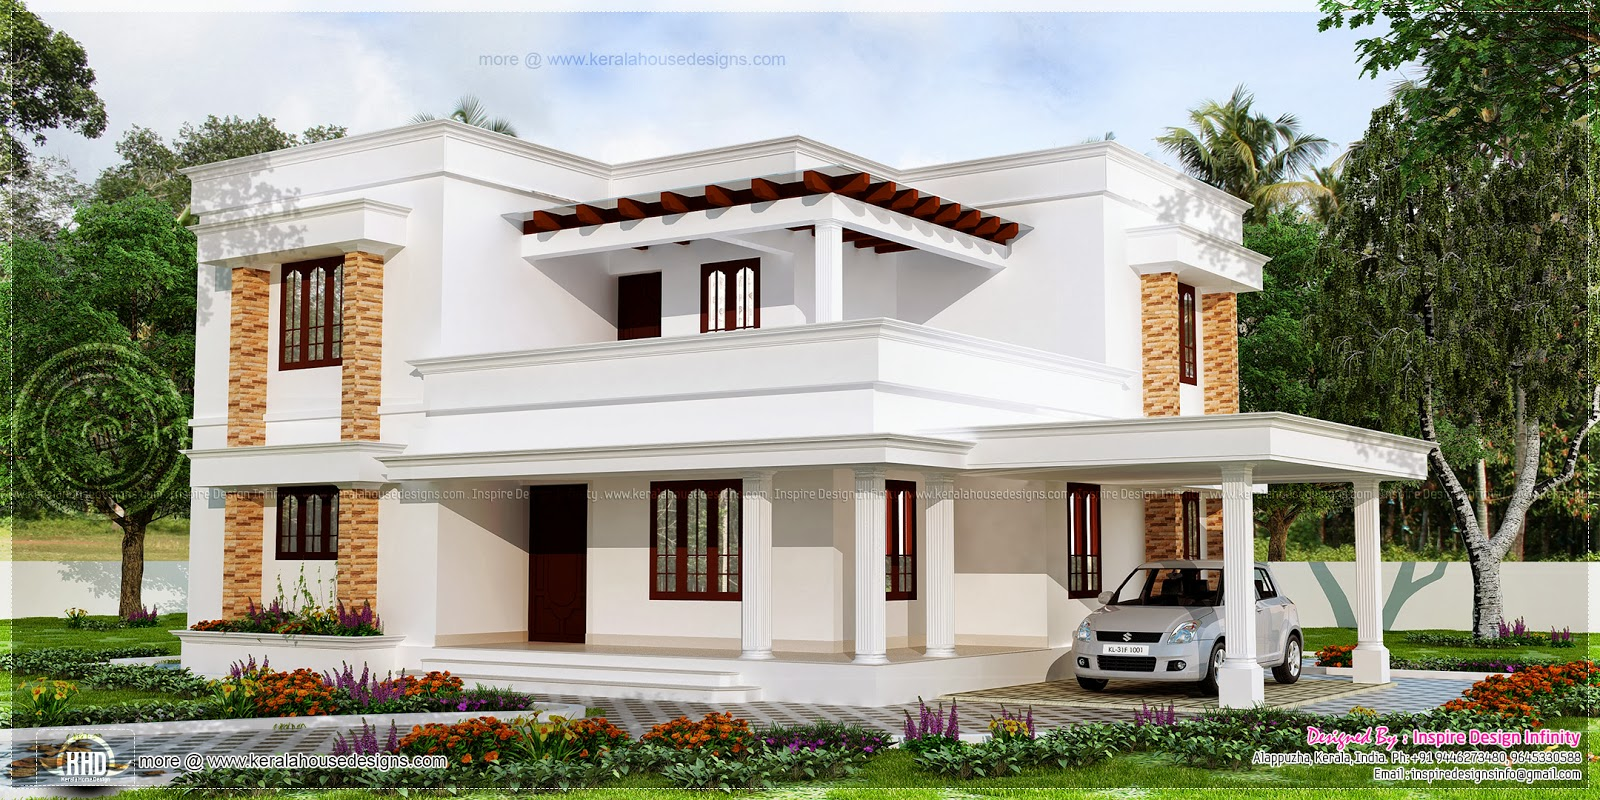 167 Square Meter Flat Roof White Color House Kerala Home